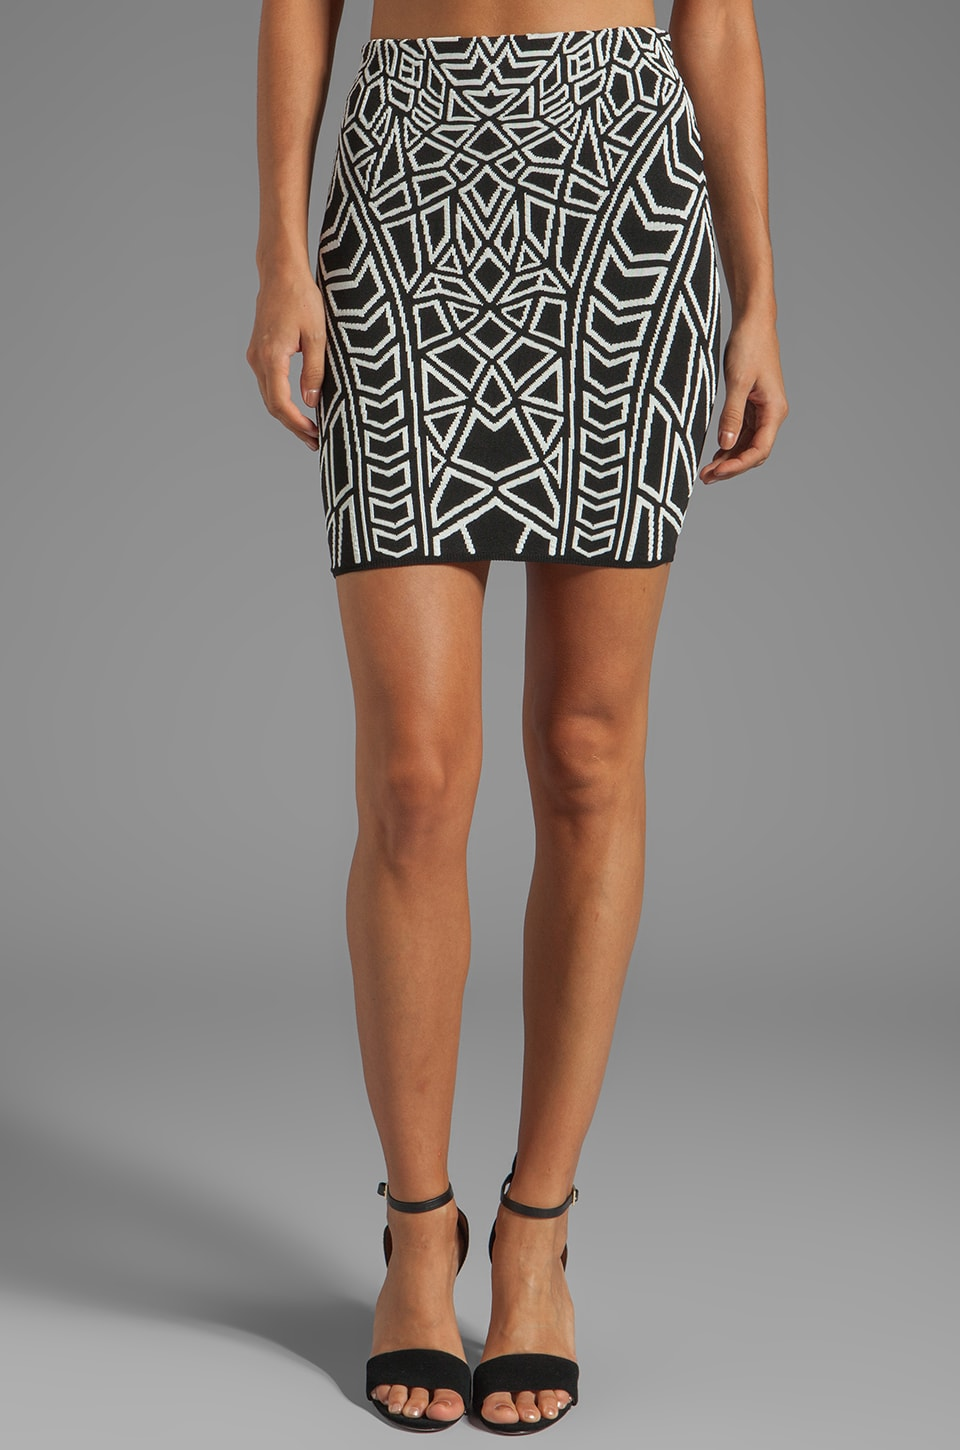 RVN Geo Jacquard Mini Skirt in White/Black